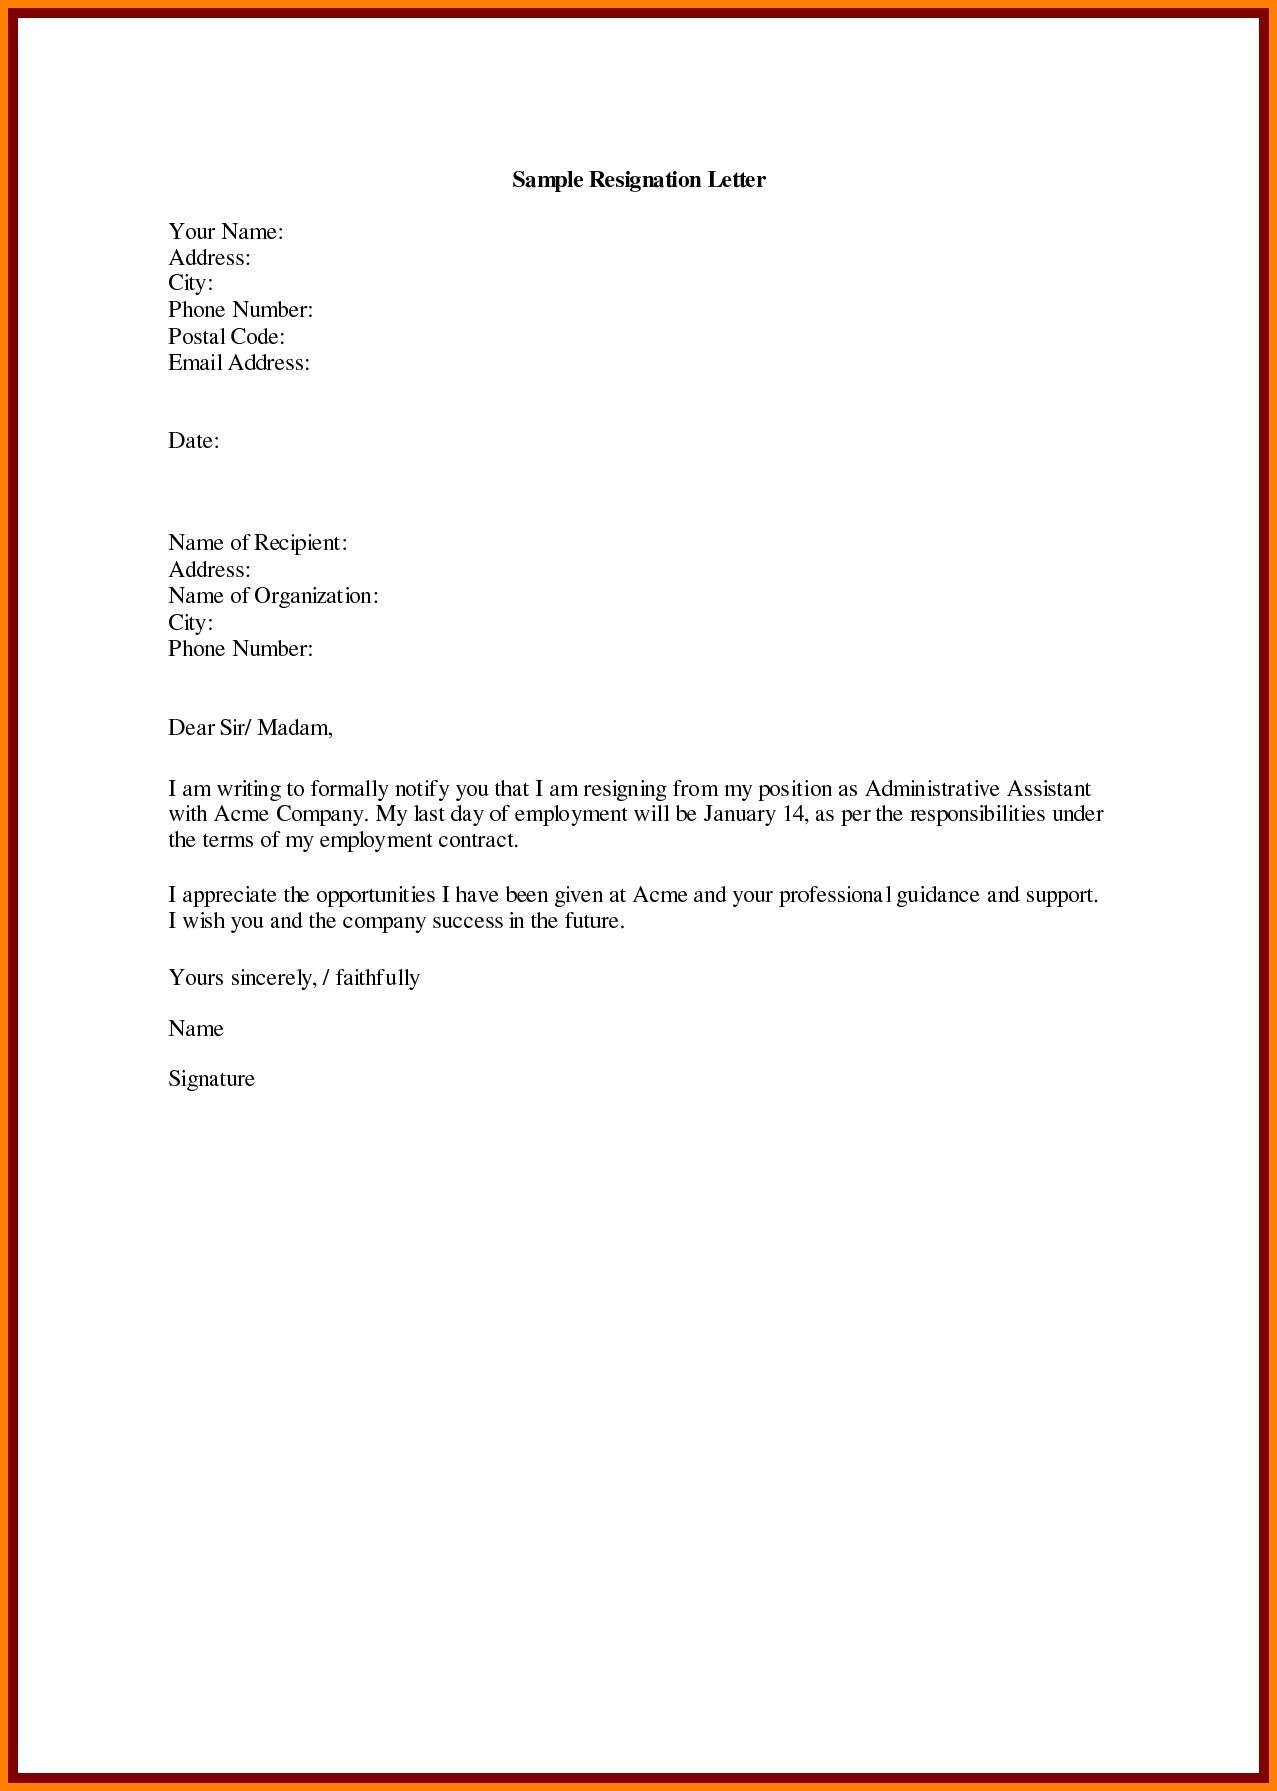 sample resignation letter it professional - Sada ...